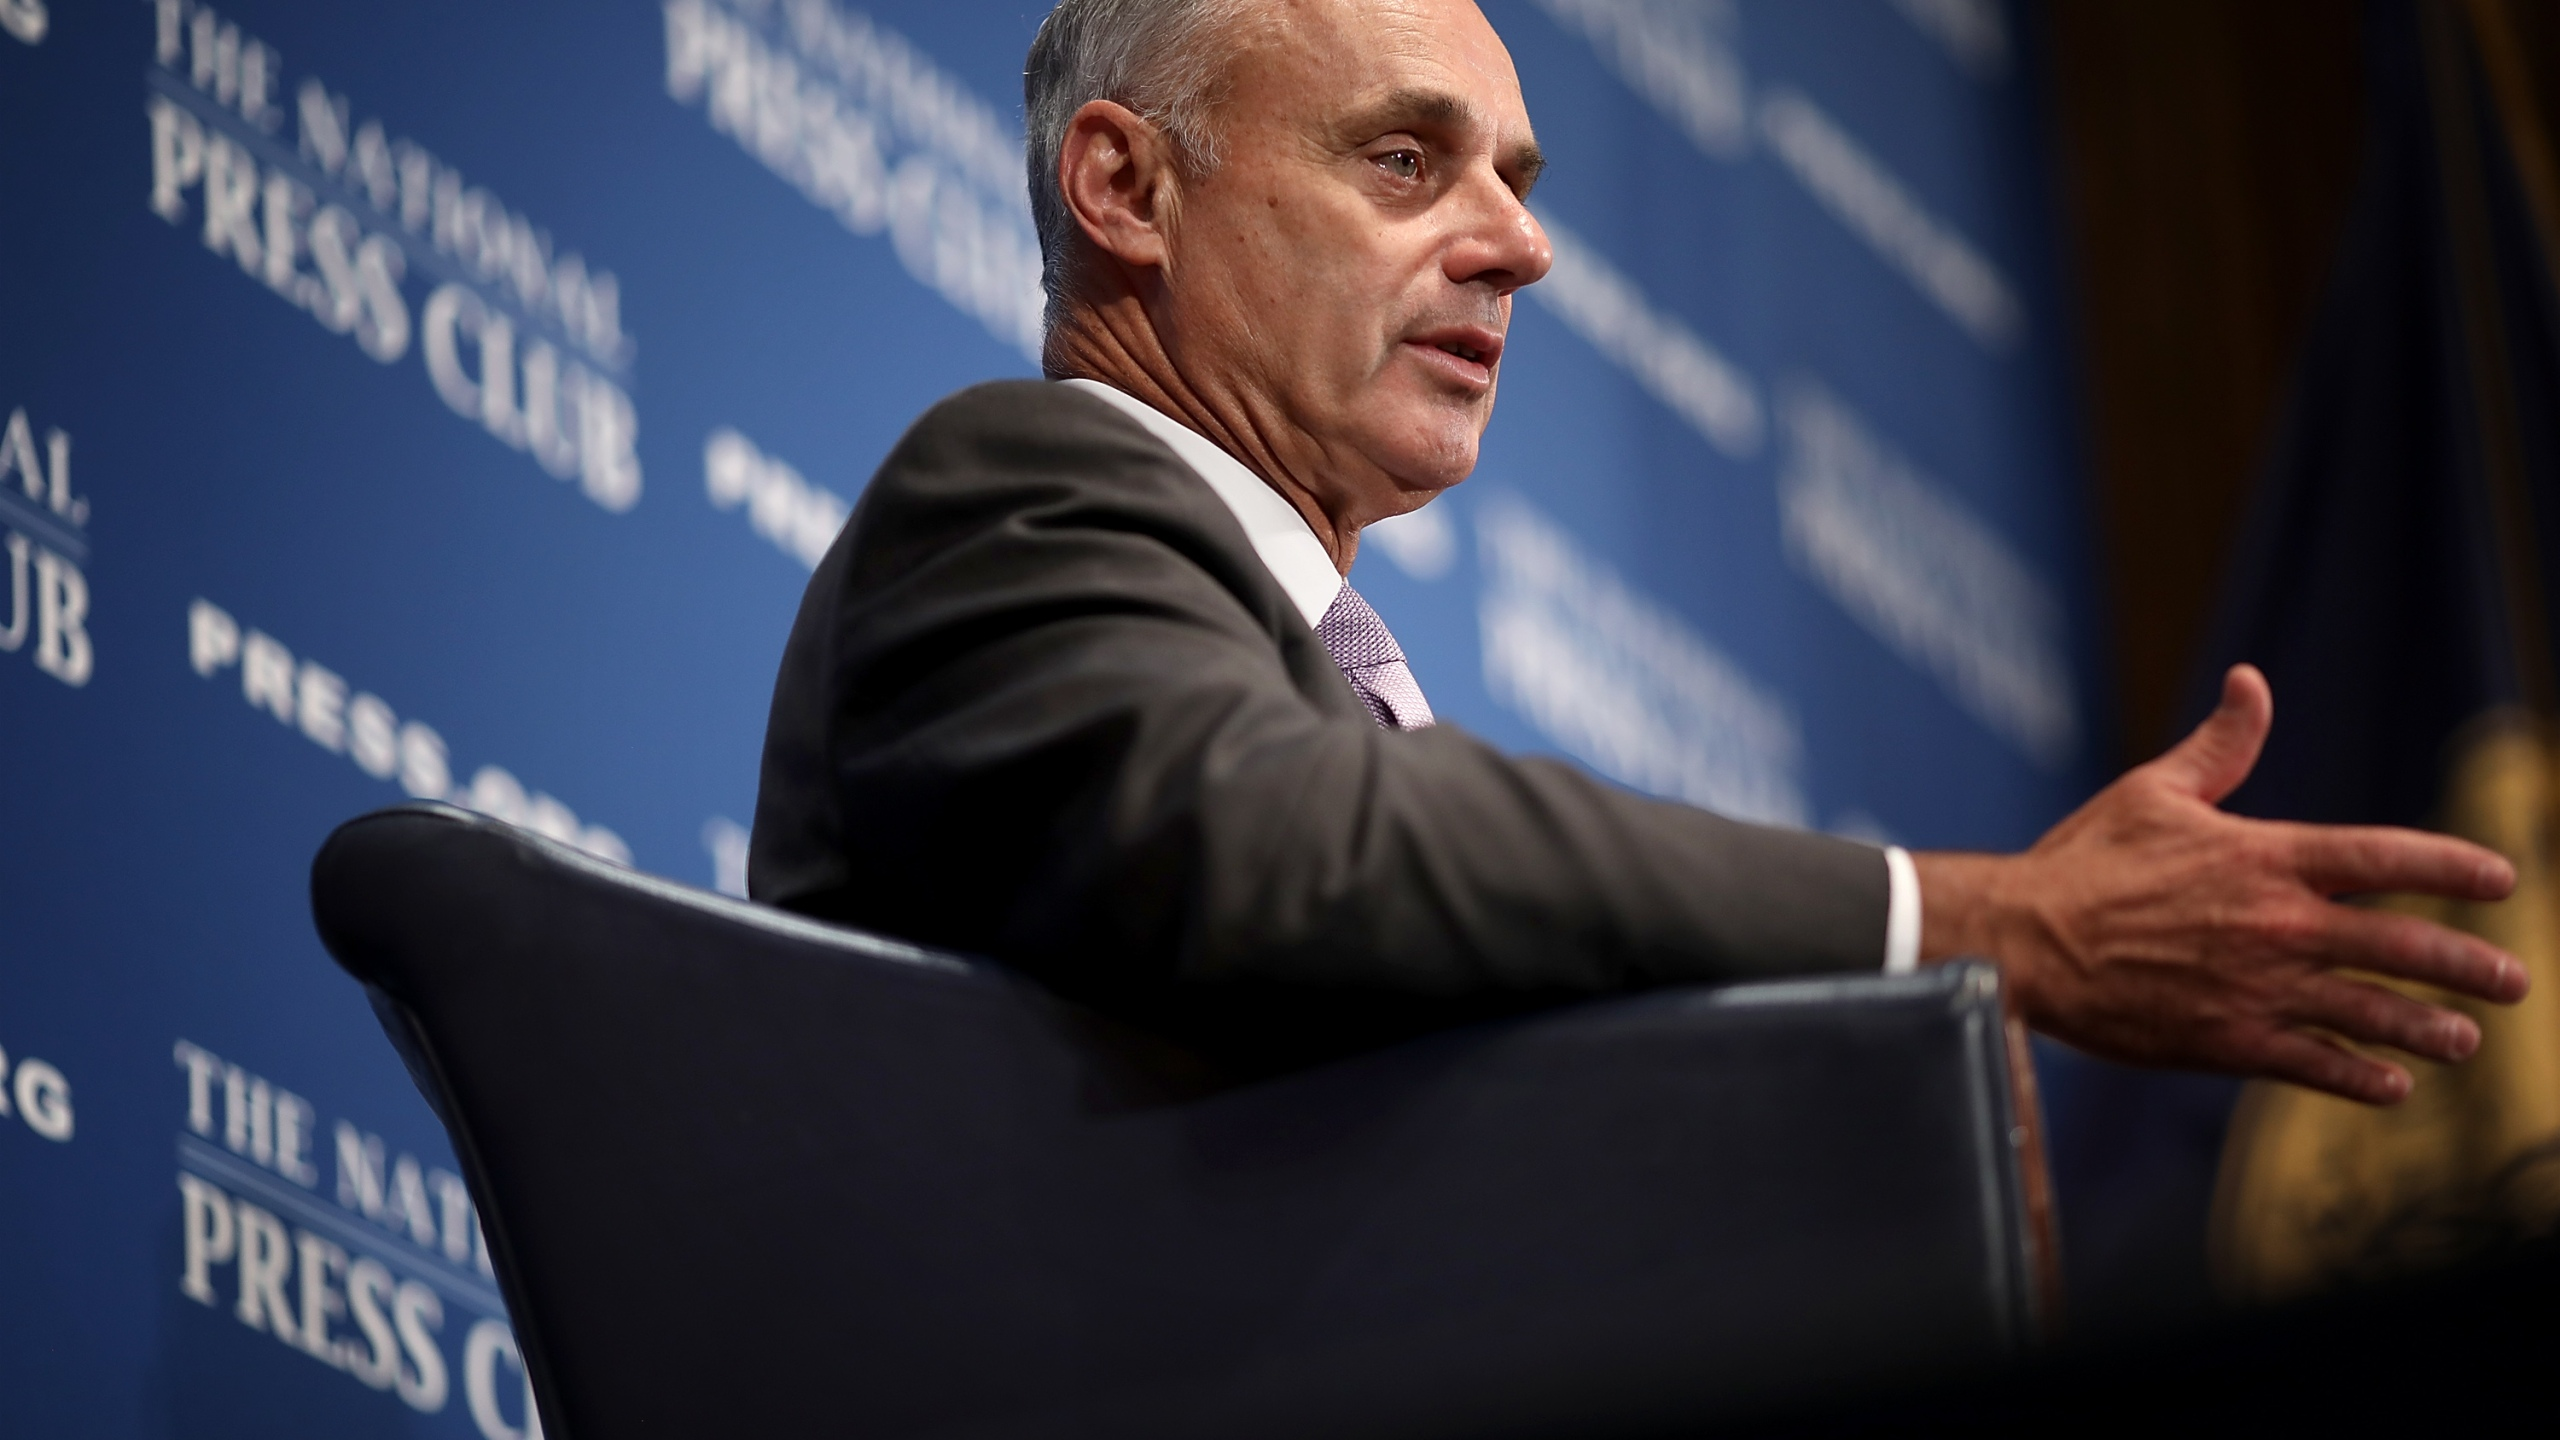 Major League Baseball Commissioner Rob Manfred speaks at the National Press Club July 16, 2018, in Washington, D.C.(Credit: Win McNamee/Getty Images)